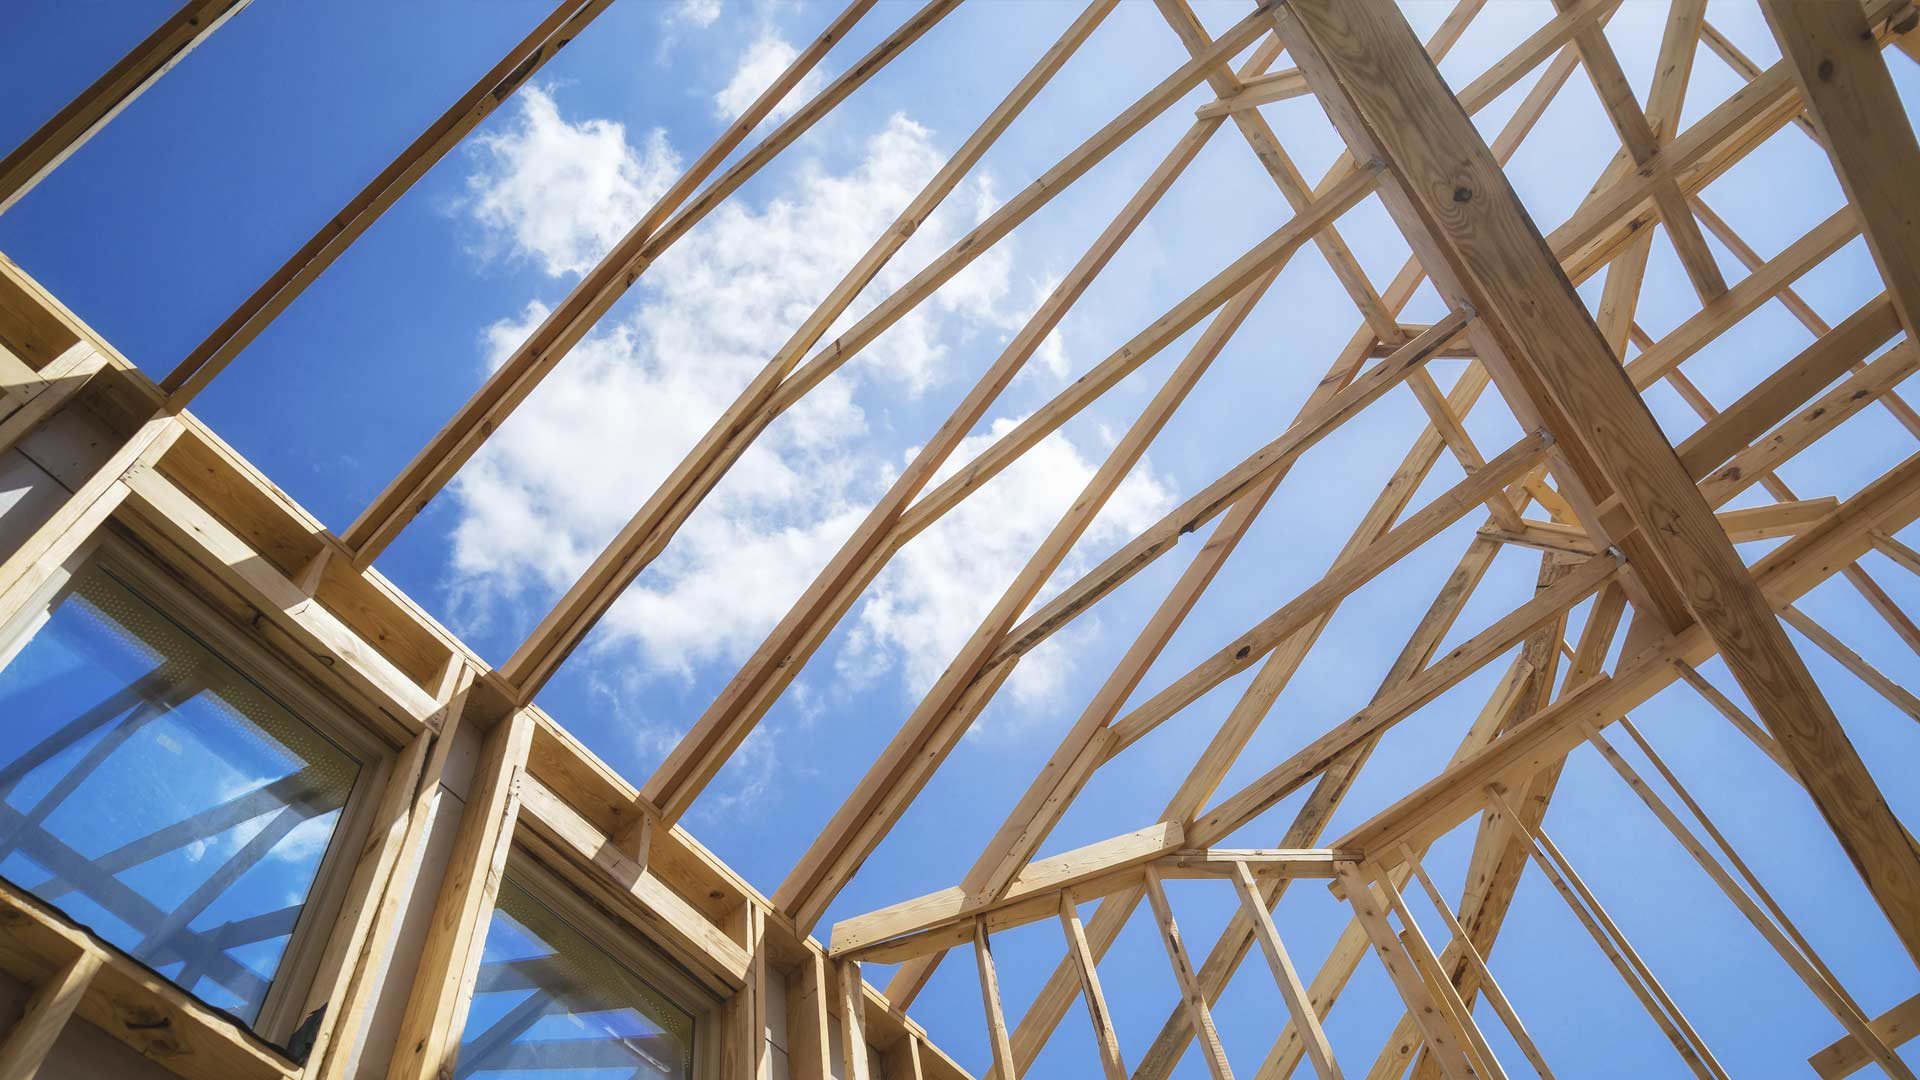 Rcc Construction Company : Home los angeles construction estimating owner s